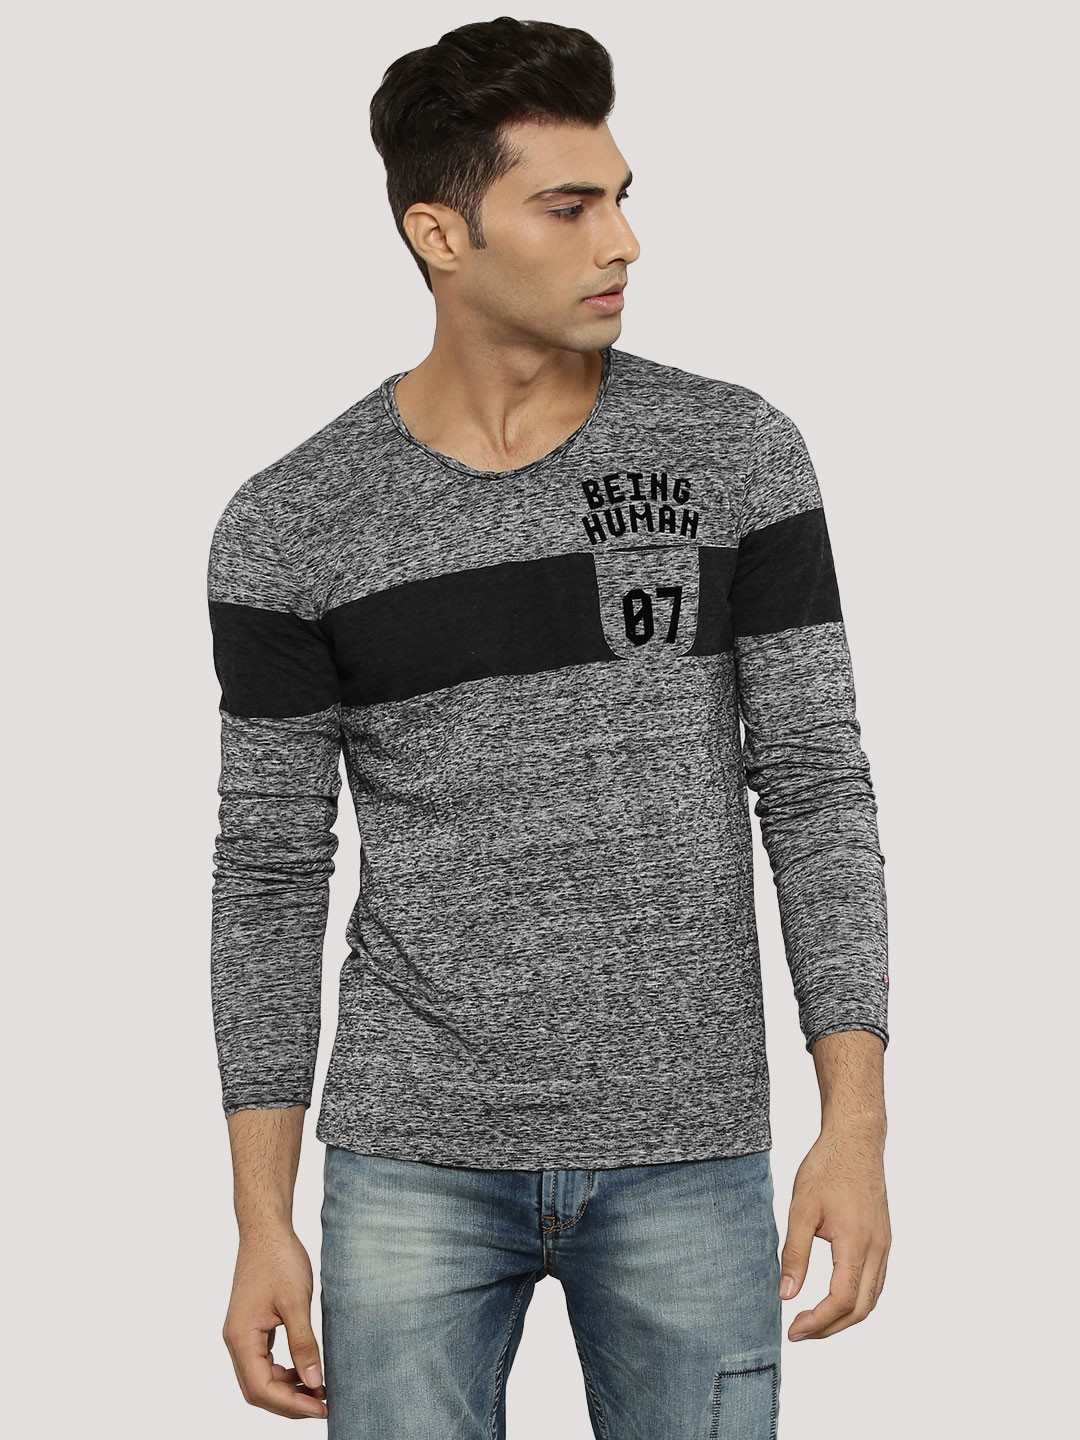 Buy being human panel t shirt in melange for men men 39 s for Buy being human t shirts online